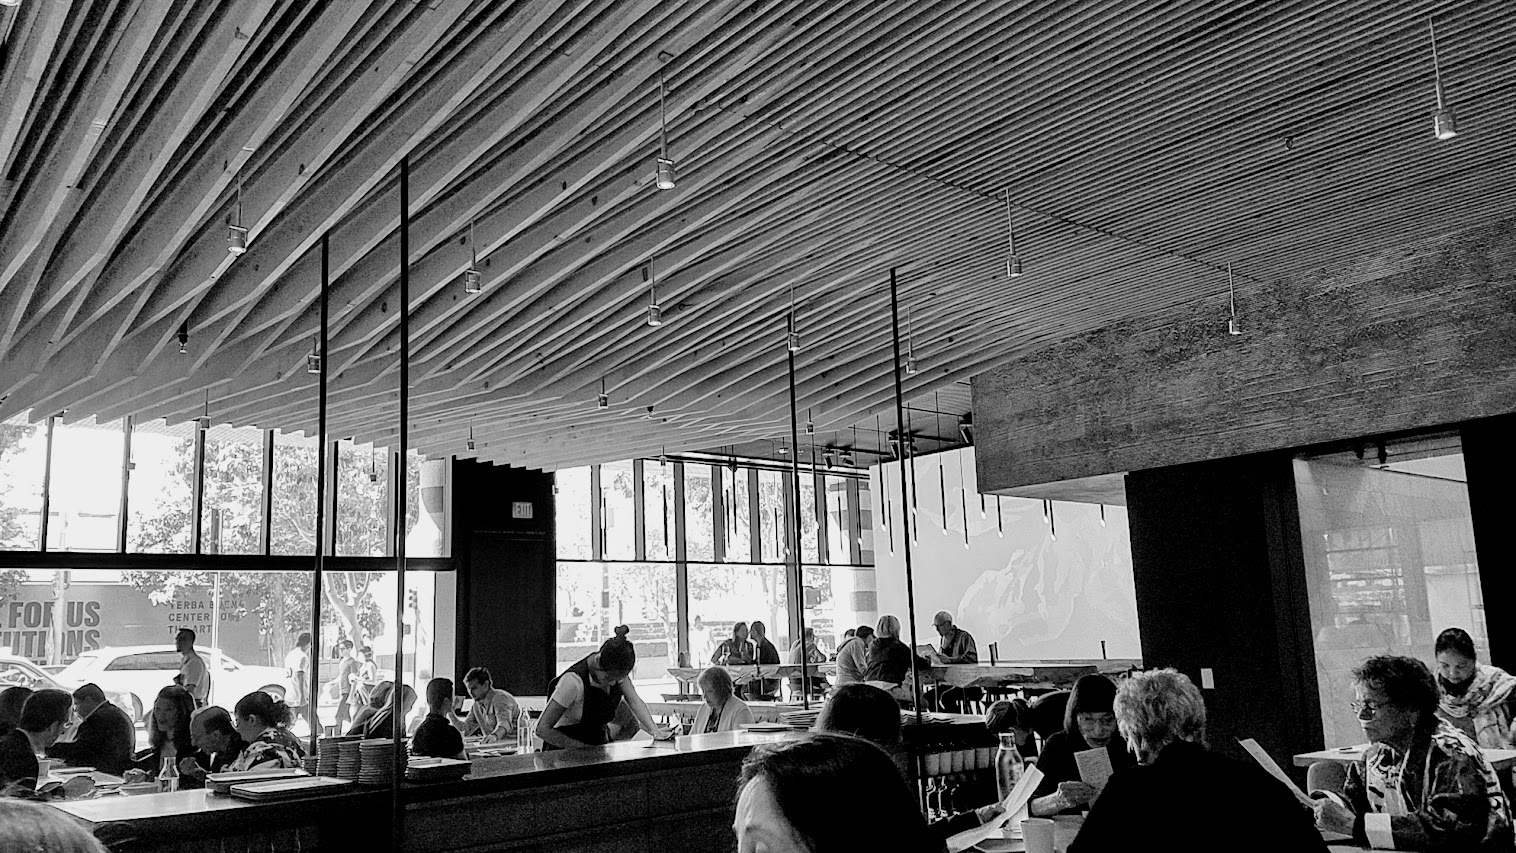 A Meal at In Situ, a restaurant at SF MOMA offering iconic dishes from Michelin restaurants around the world